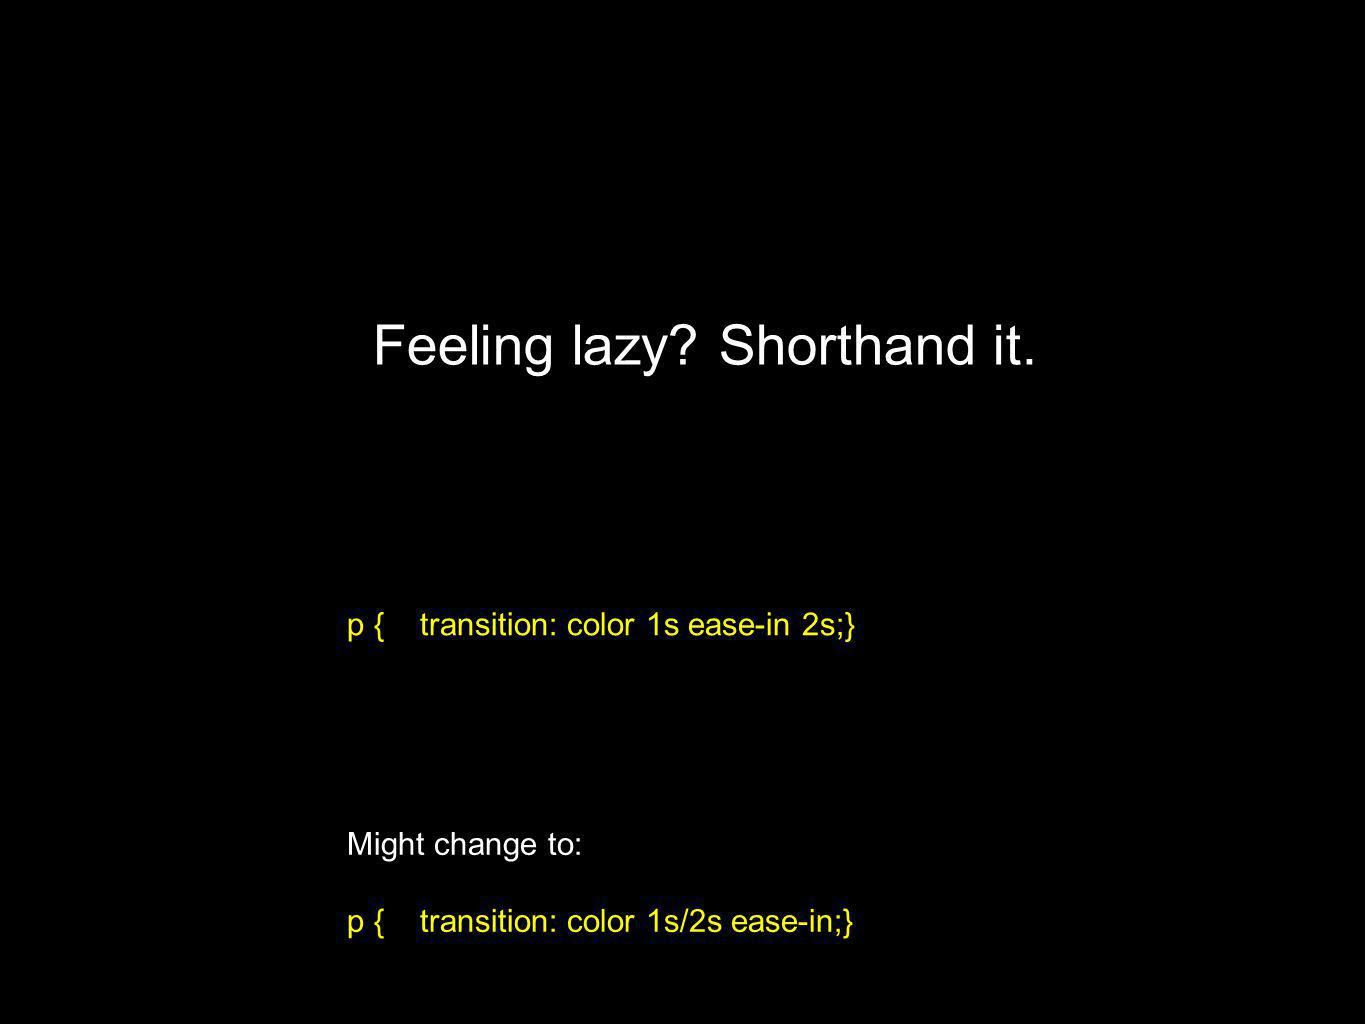 Feeling lazy. Shorthand it.